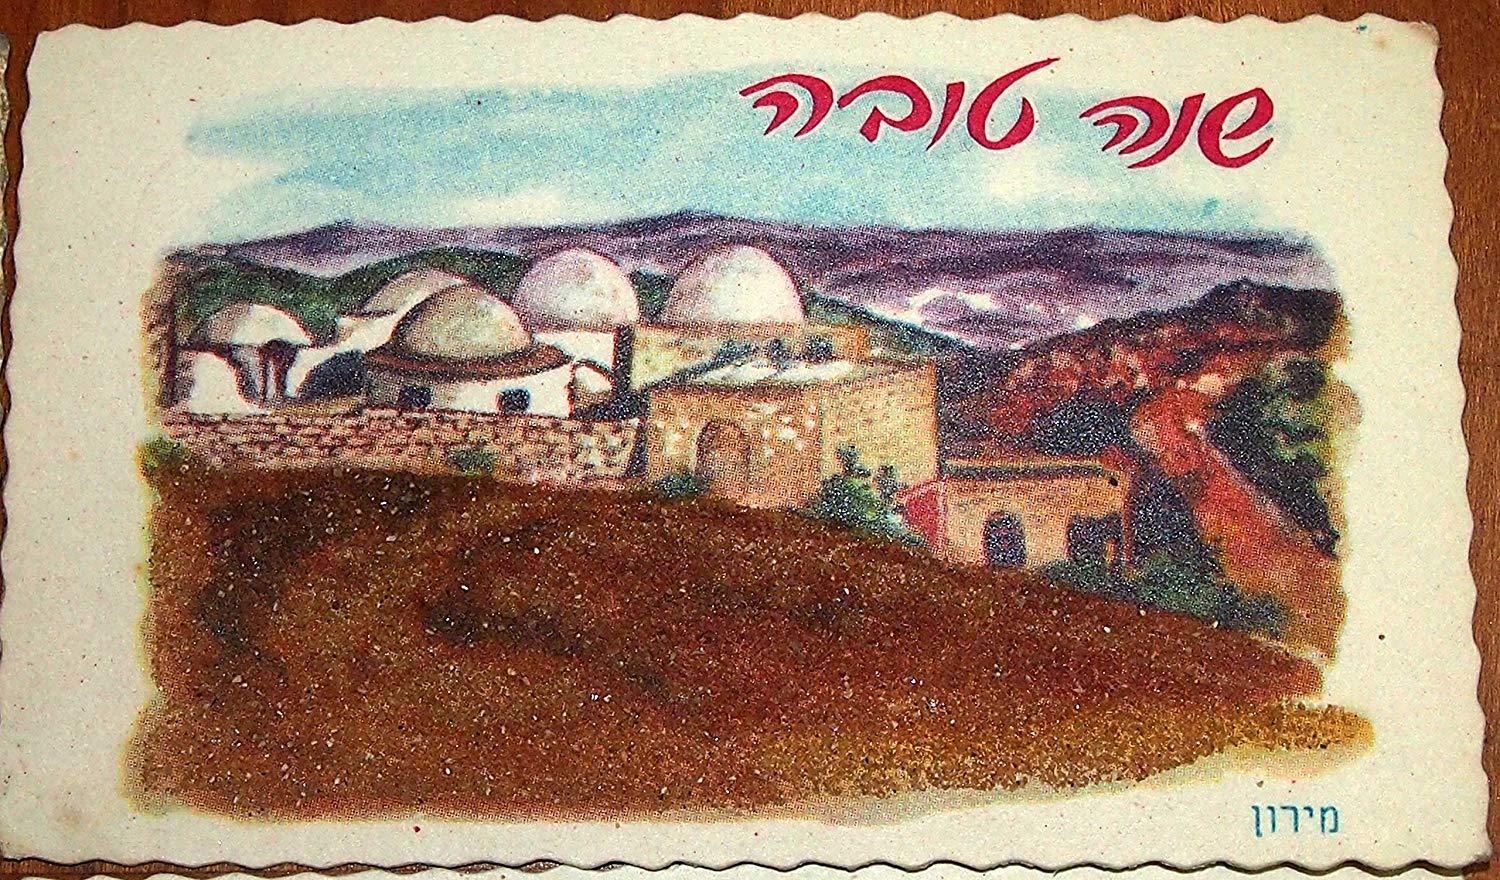 Vintage Shannah Tovah Greeting Card Meron Judaica 1960's Israel Holy Land Soil